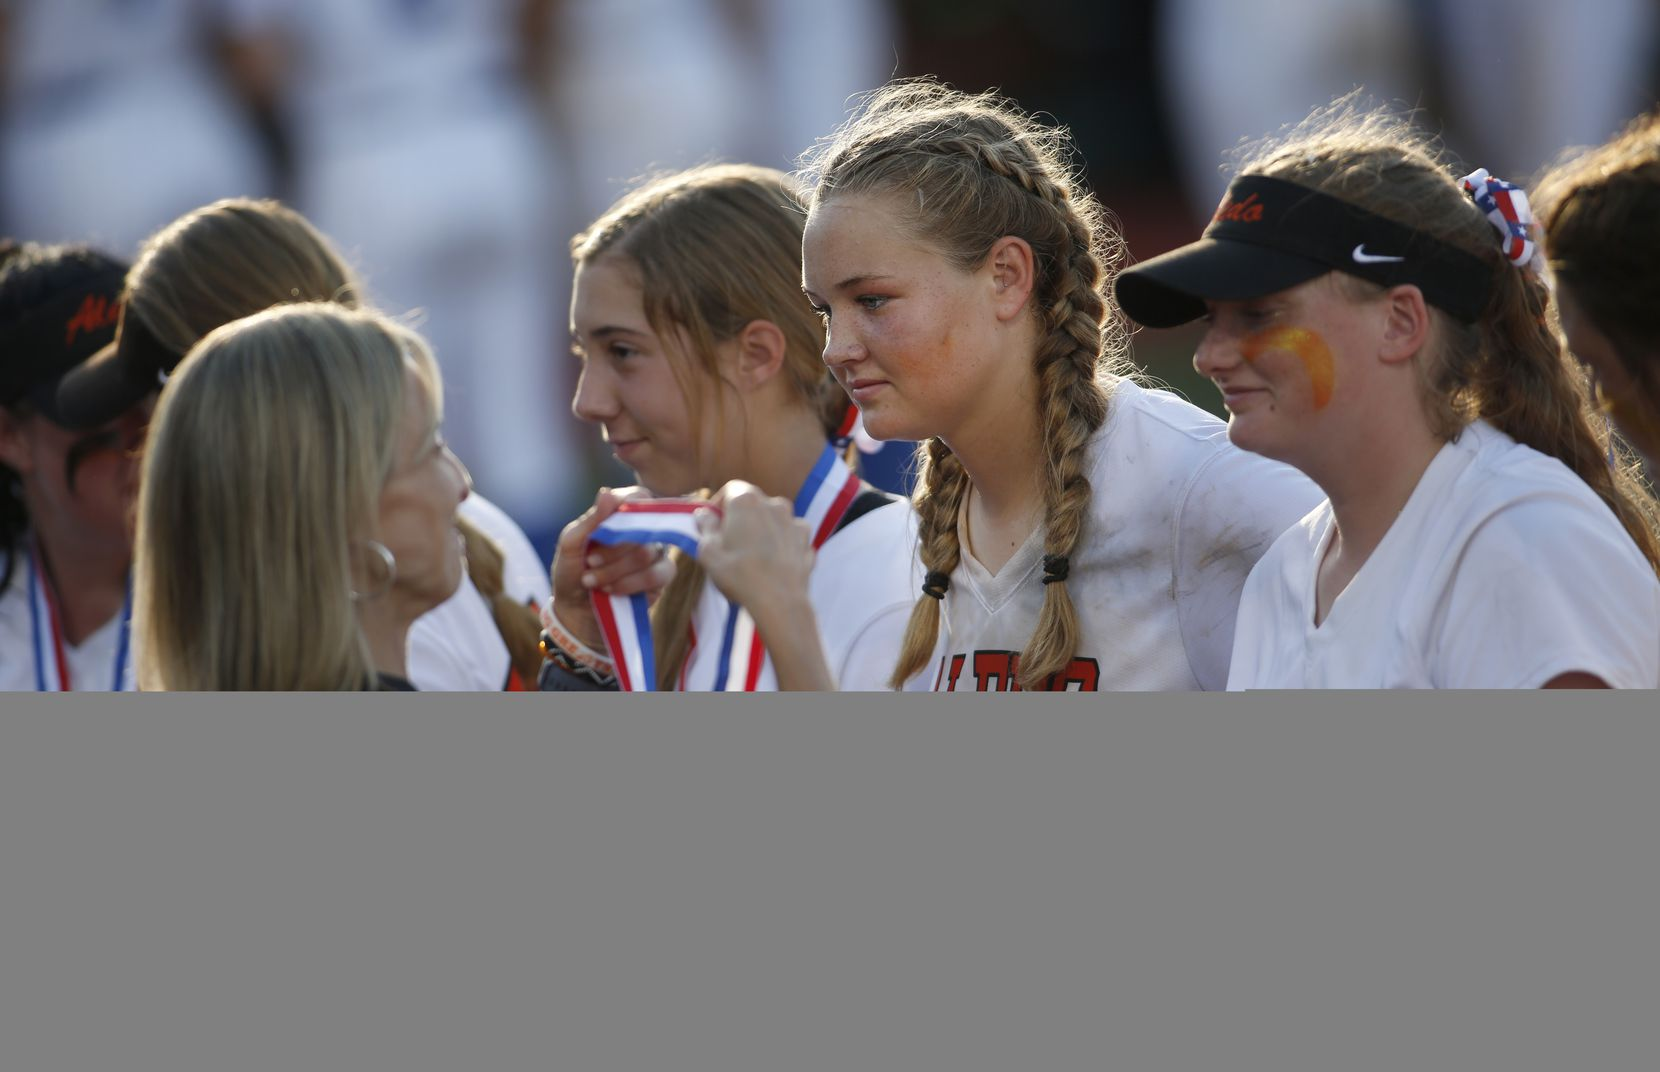 Aledo pitcher Kayleigh Smith (15) prepares to receive her state runner-up medal during the awards presentation after Barbers Hill defeated the Lady Cats, 4-1 , to capture the state title. The two teams played their UIL 5A state softball championship game at Red and Charline McCombs Field on the University of Texas campus in Austin on June 5, 2021. (Steve Hamm/ Special Contributor)